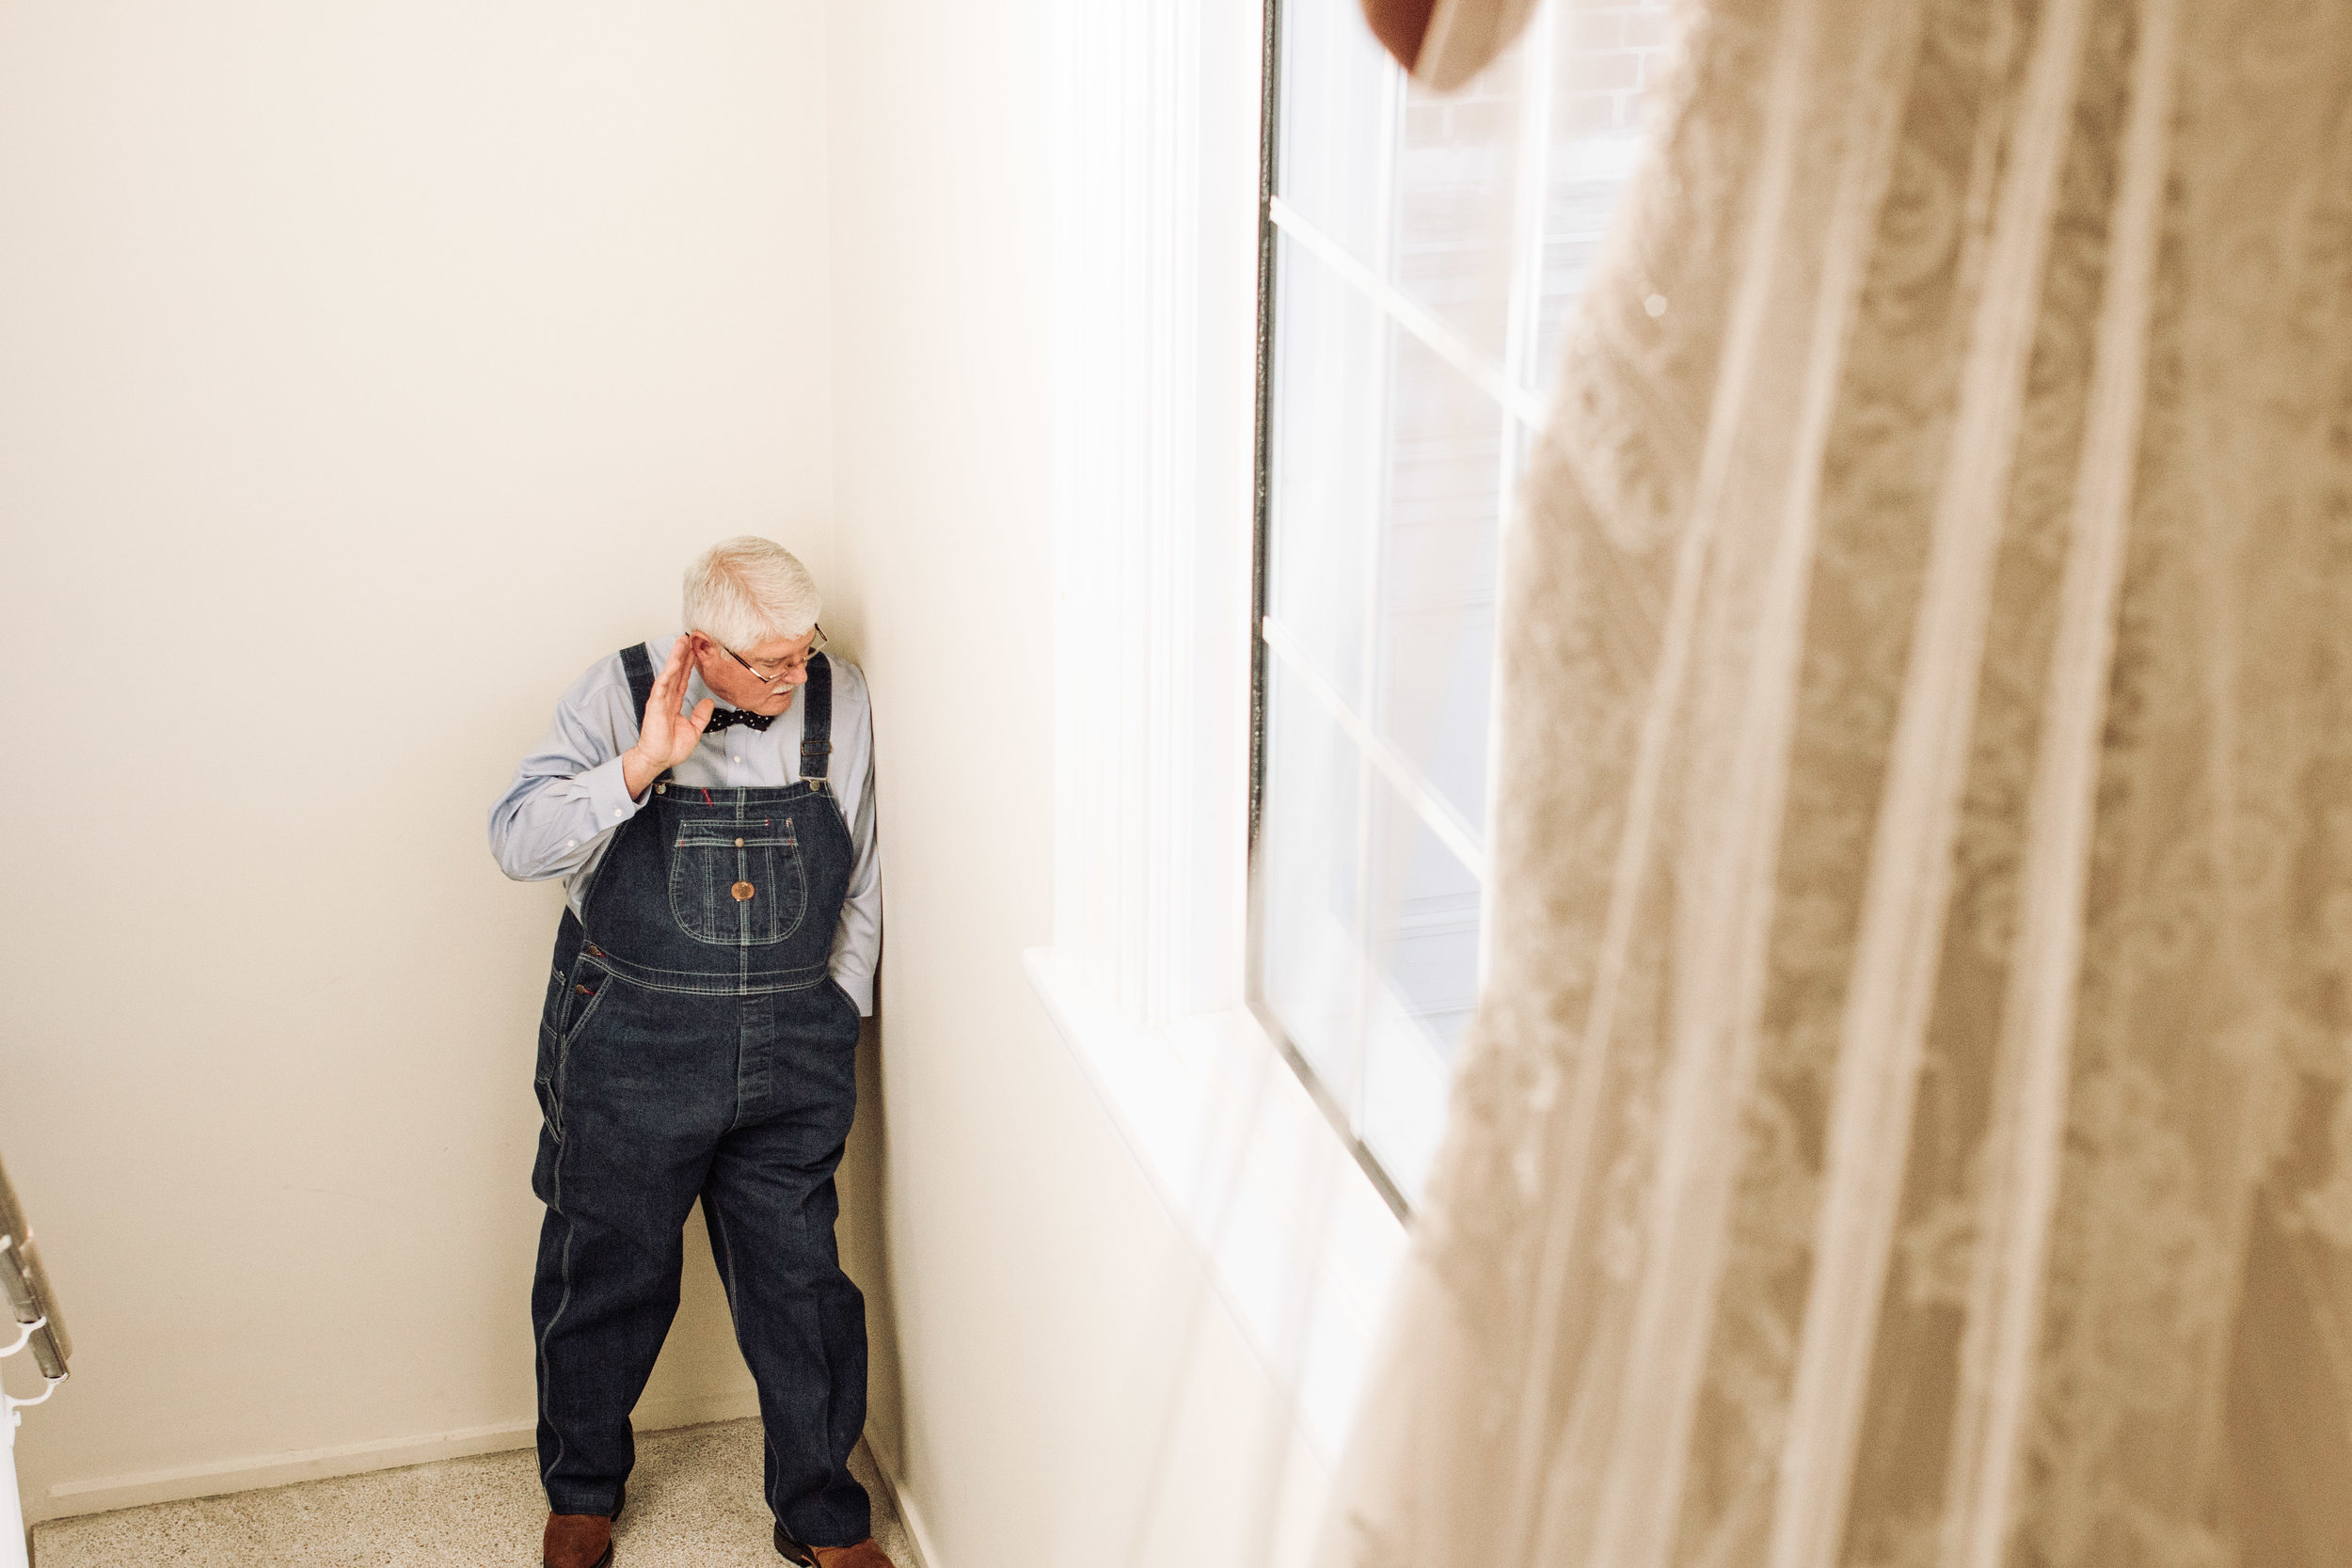 First look with Brooklyn's grandpa, who had bought brand new overalls just for the wedding.